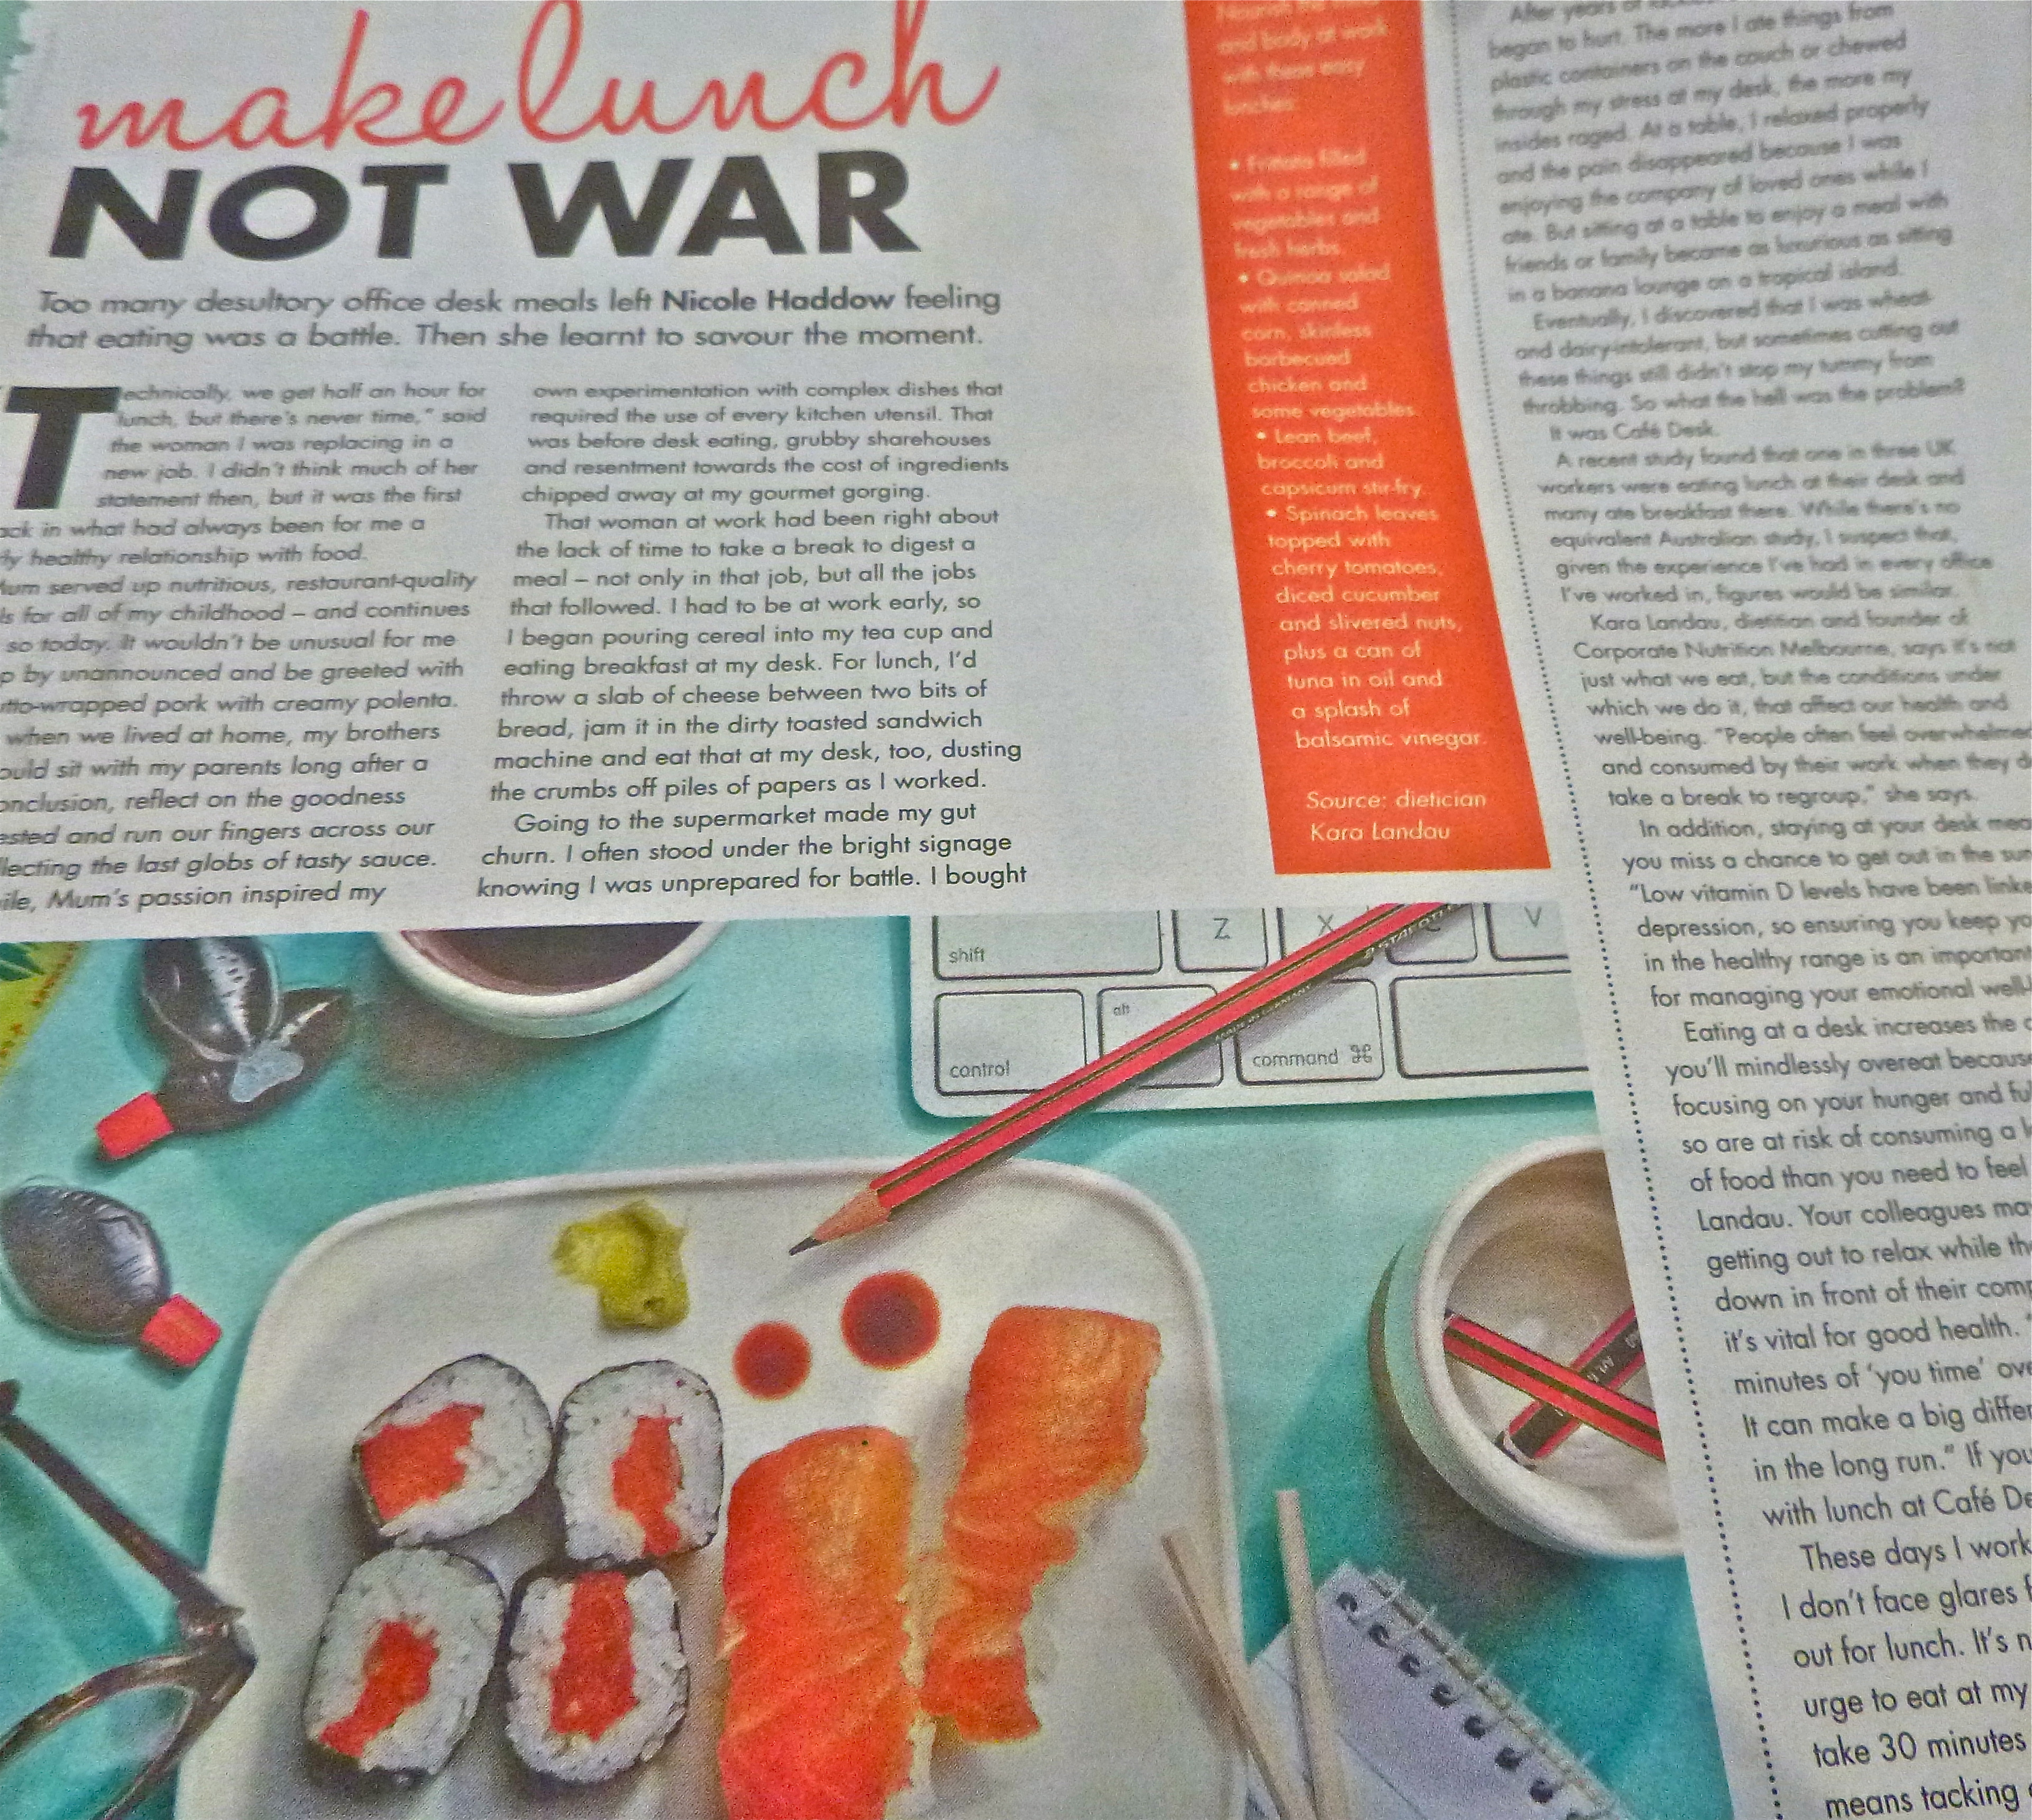 Kara Landau expert nutrition commentary on how to eat healthy as a busy corporate in the national media.